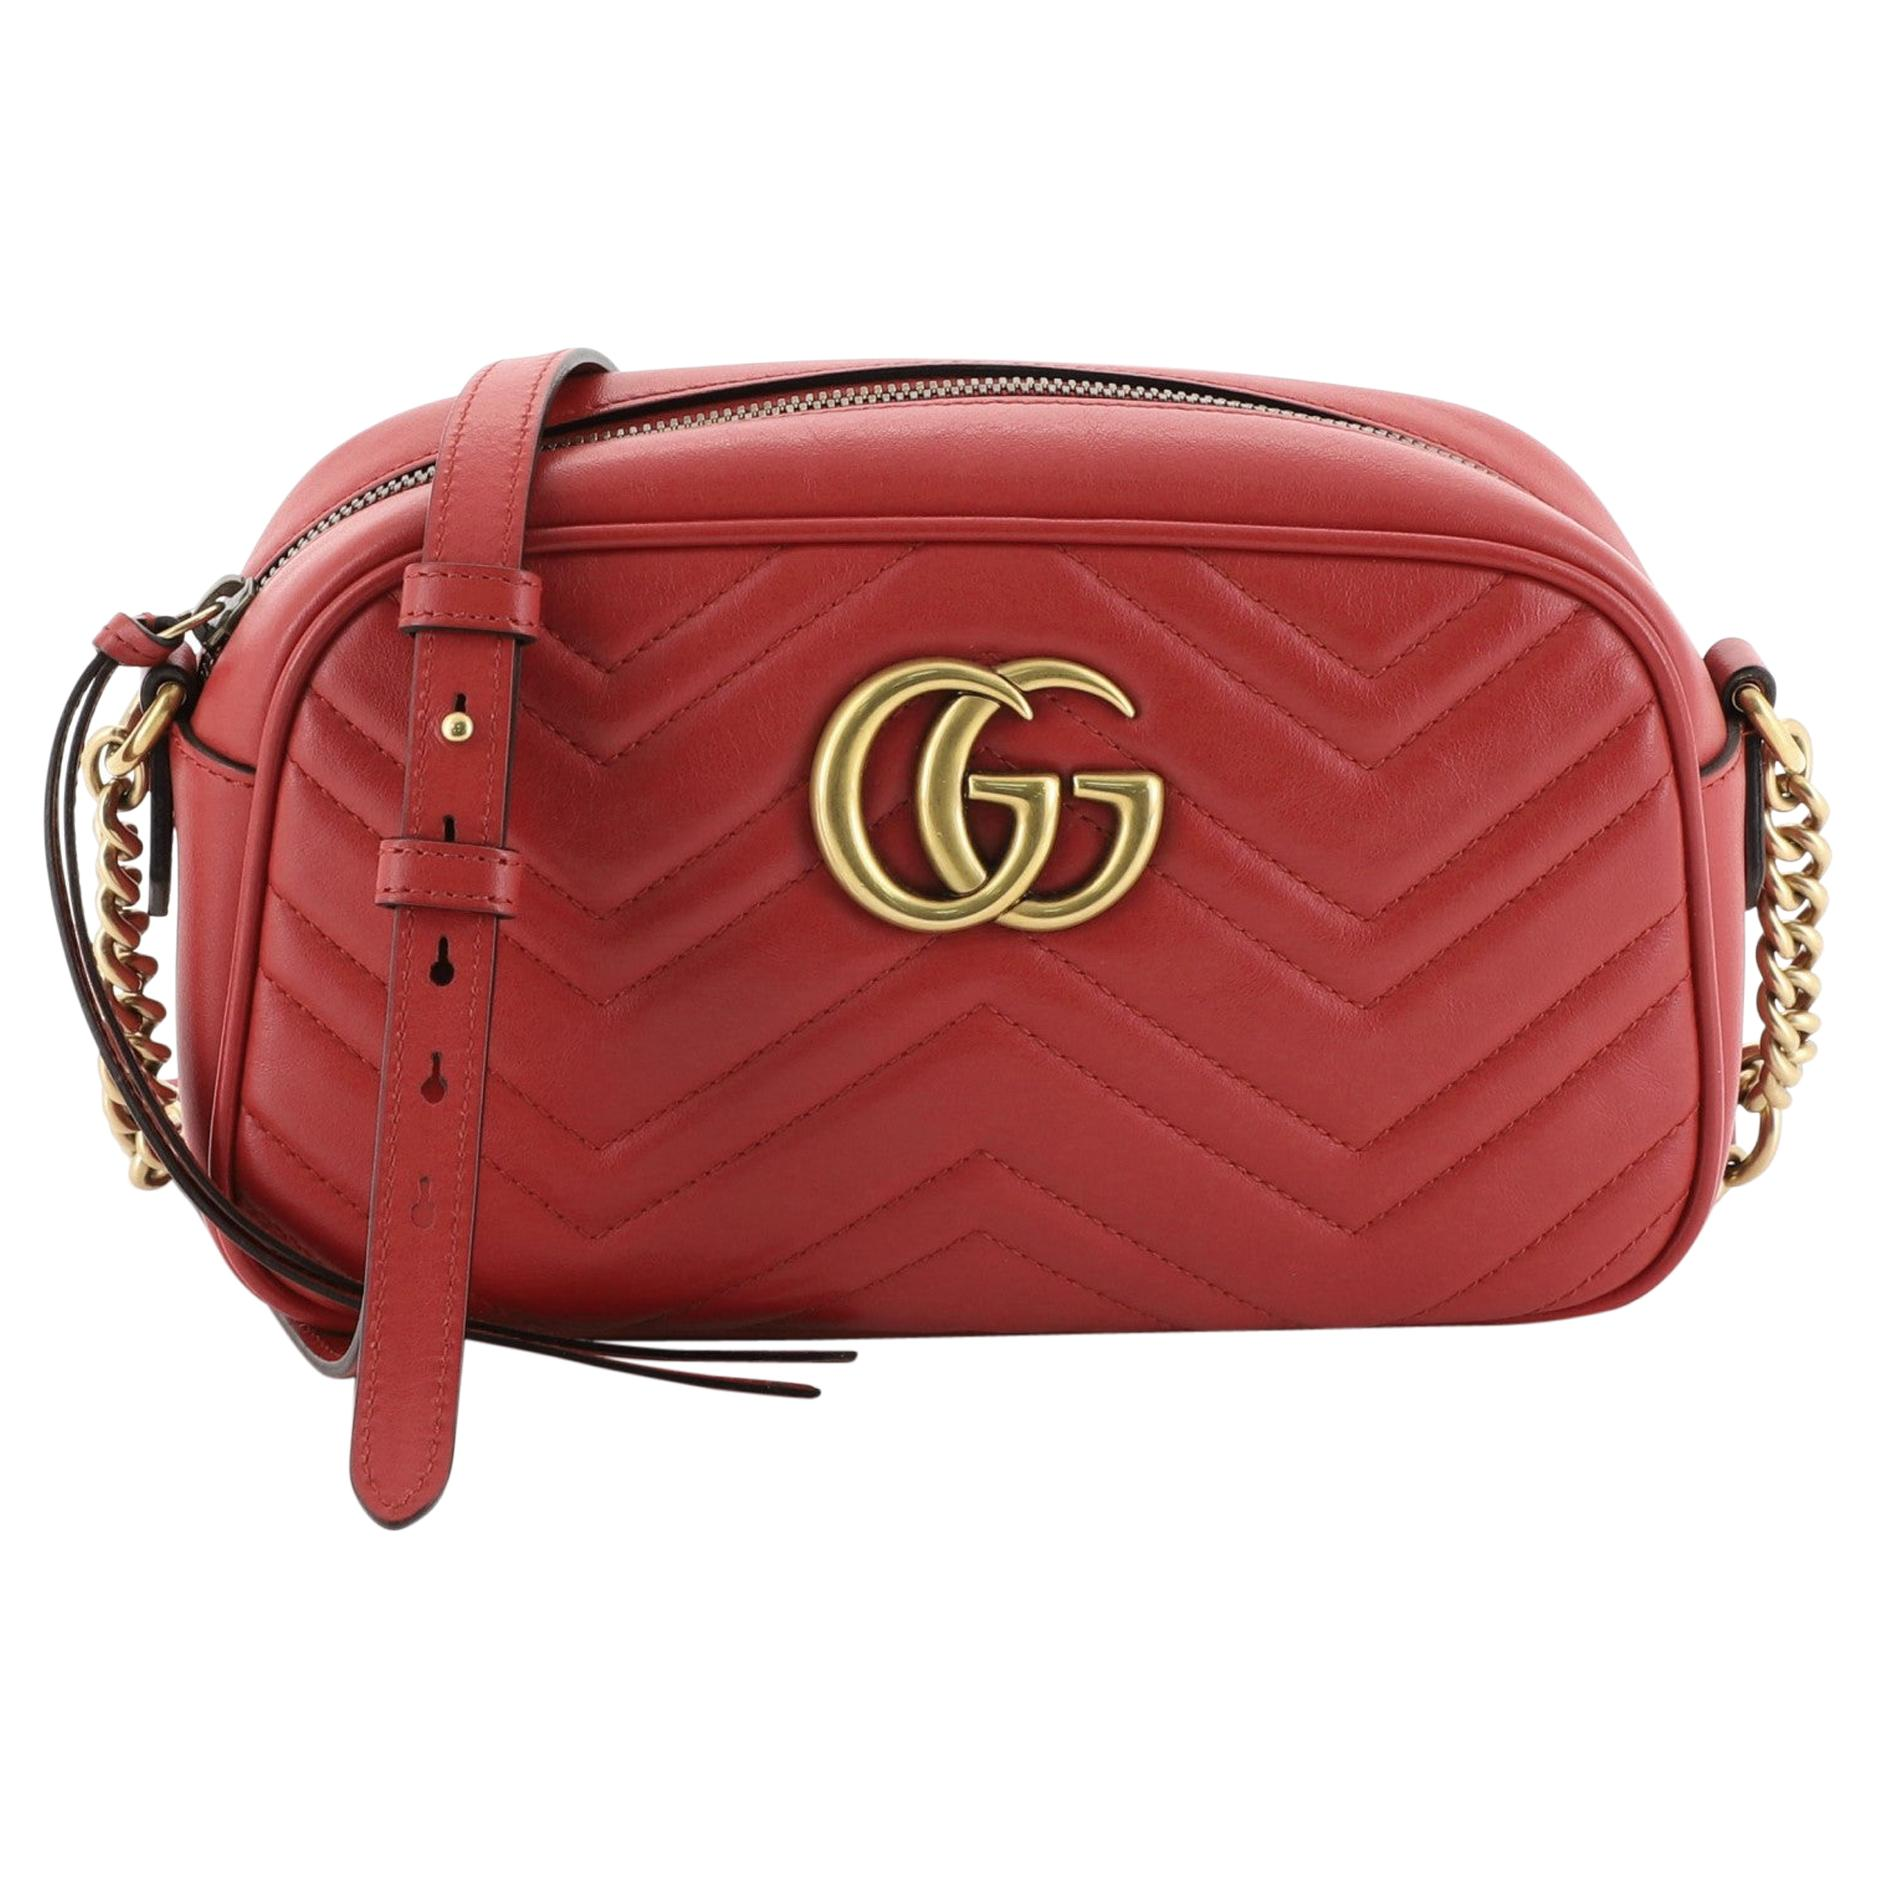 d7d7afb5f12 Vintage Gucci Handbags and Purses - 2,479 For Sale at 1stdibs